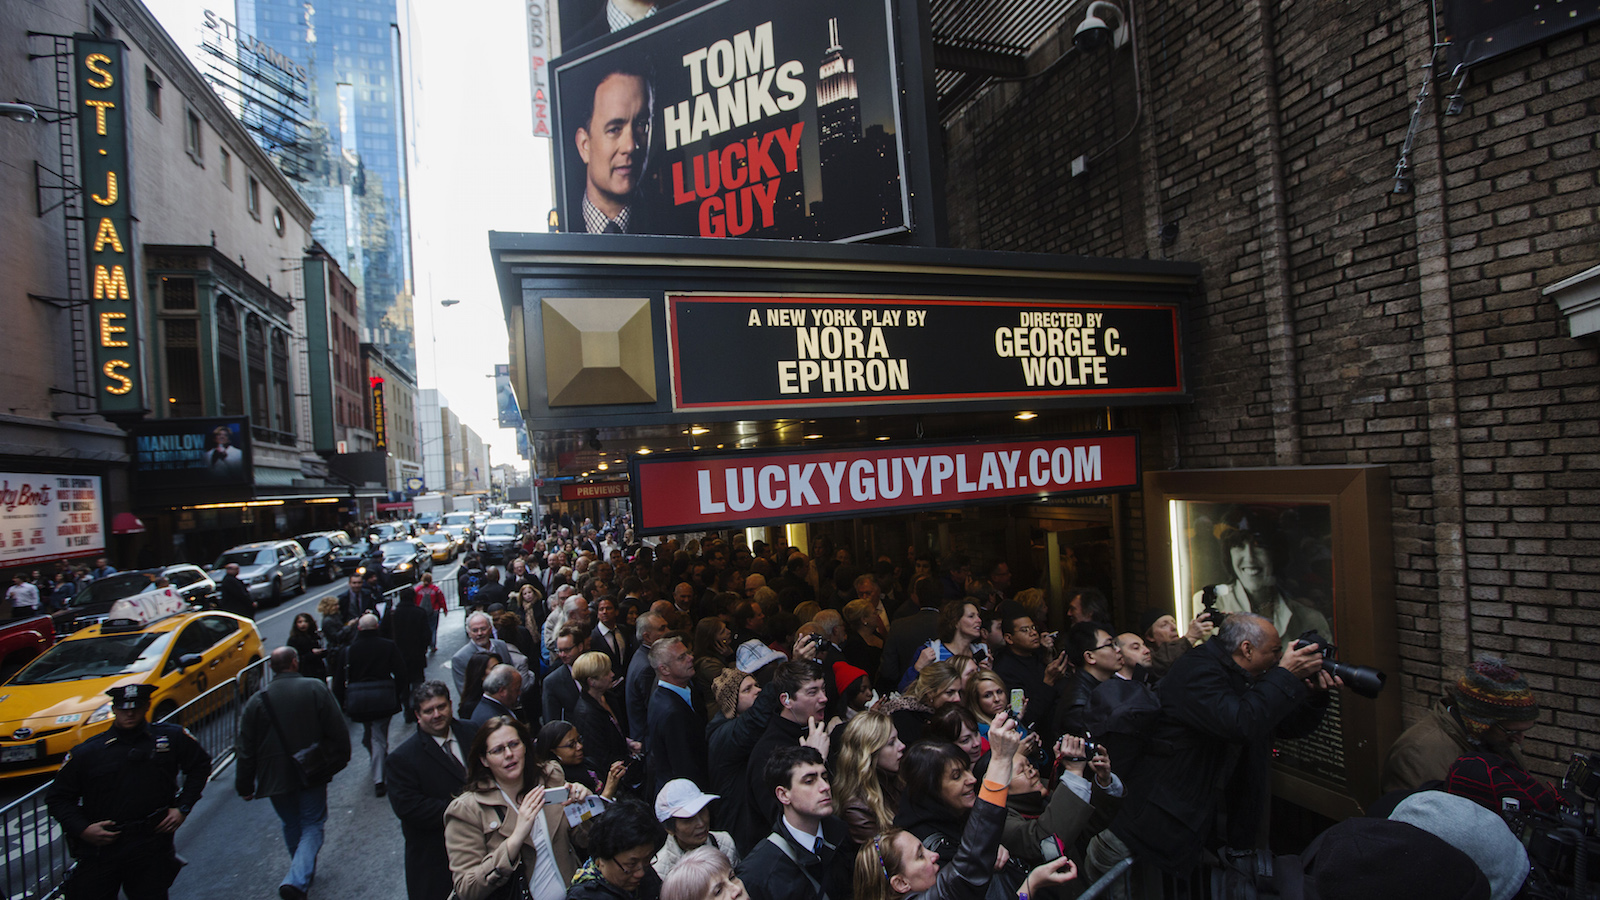 Fans line up outside the Broadhurst Theater to watch movie stars arrive for the premiere of the play Lucky Guy in New York, April 1, 2013. REUTERS/Lucas Jackson (UNITED STATES - Tags: ENTERTAINMENT) - RTXY587